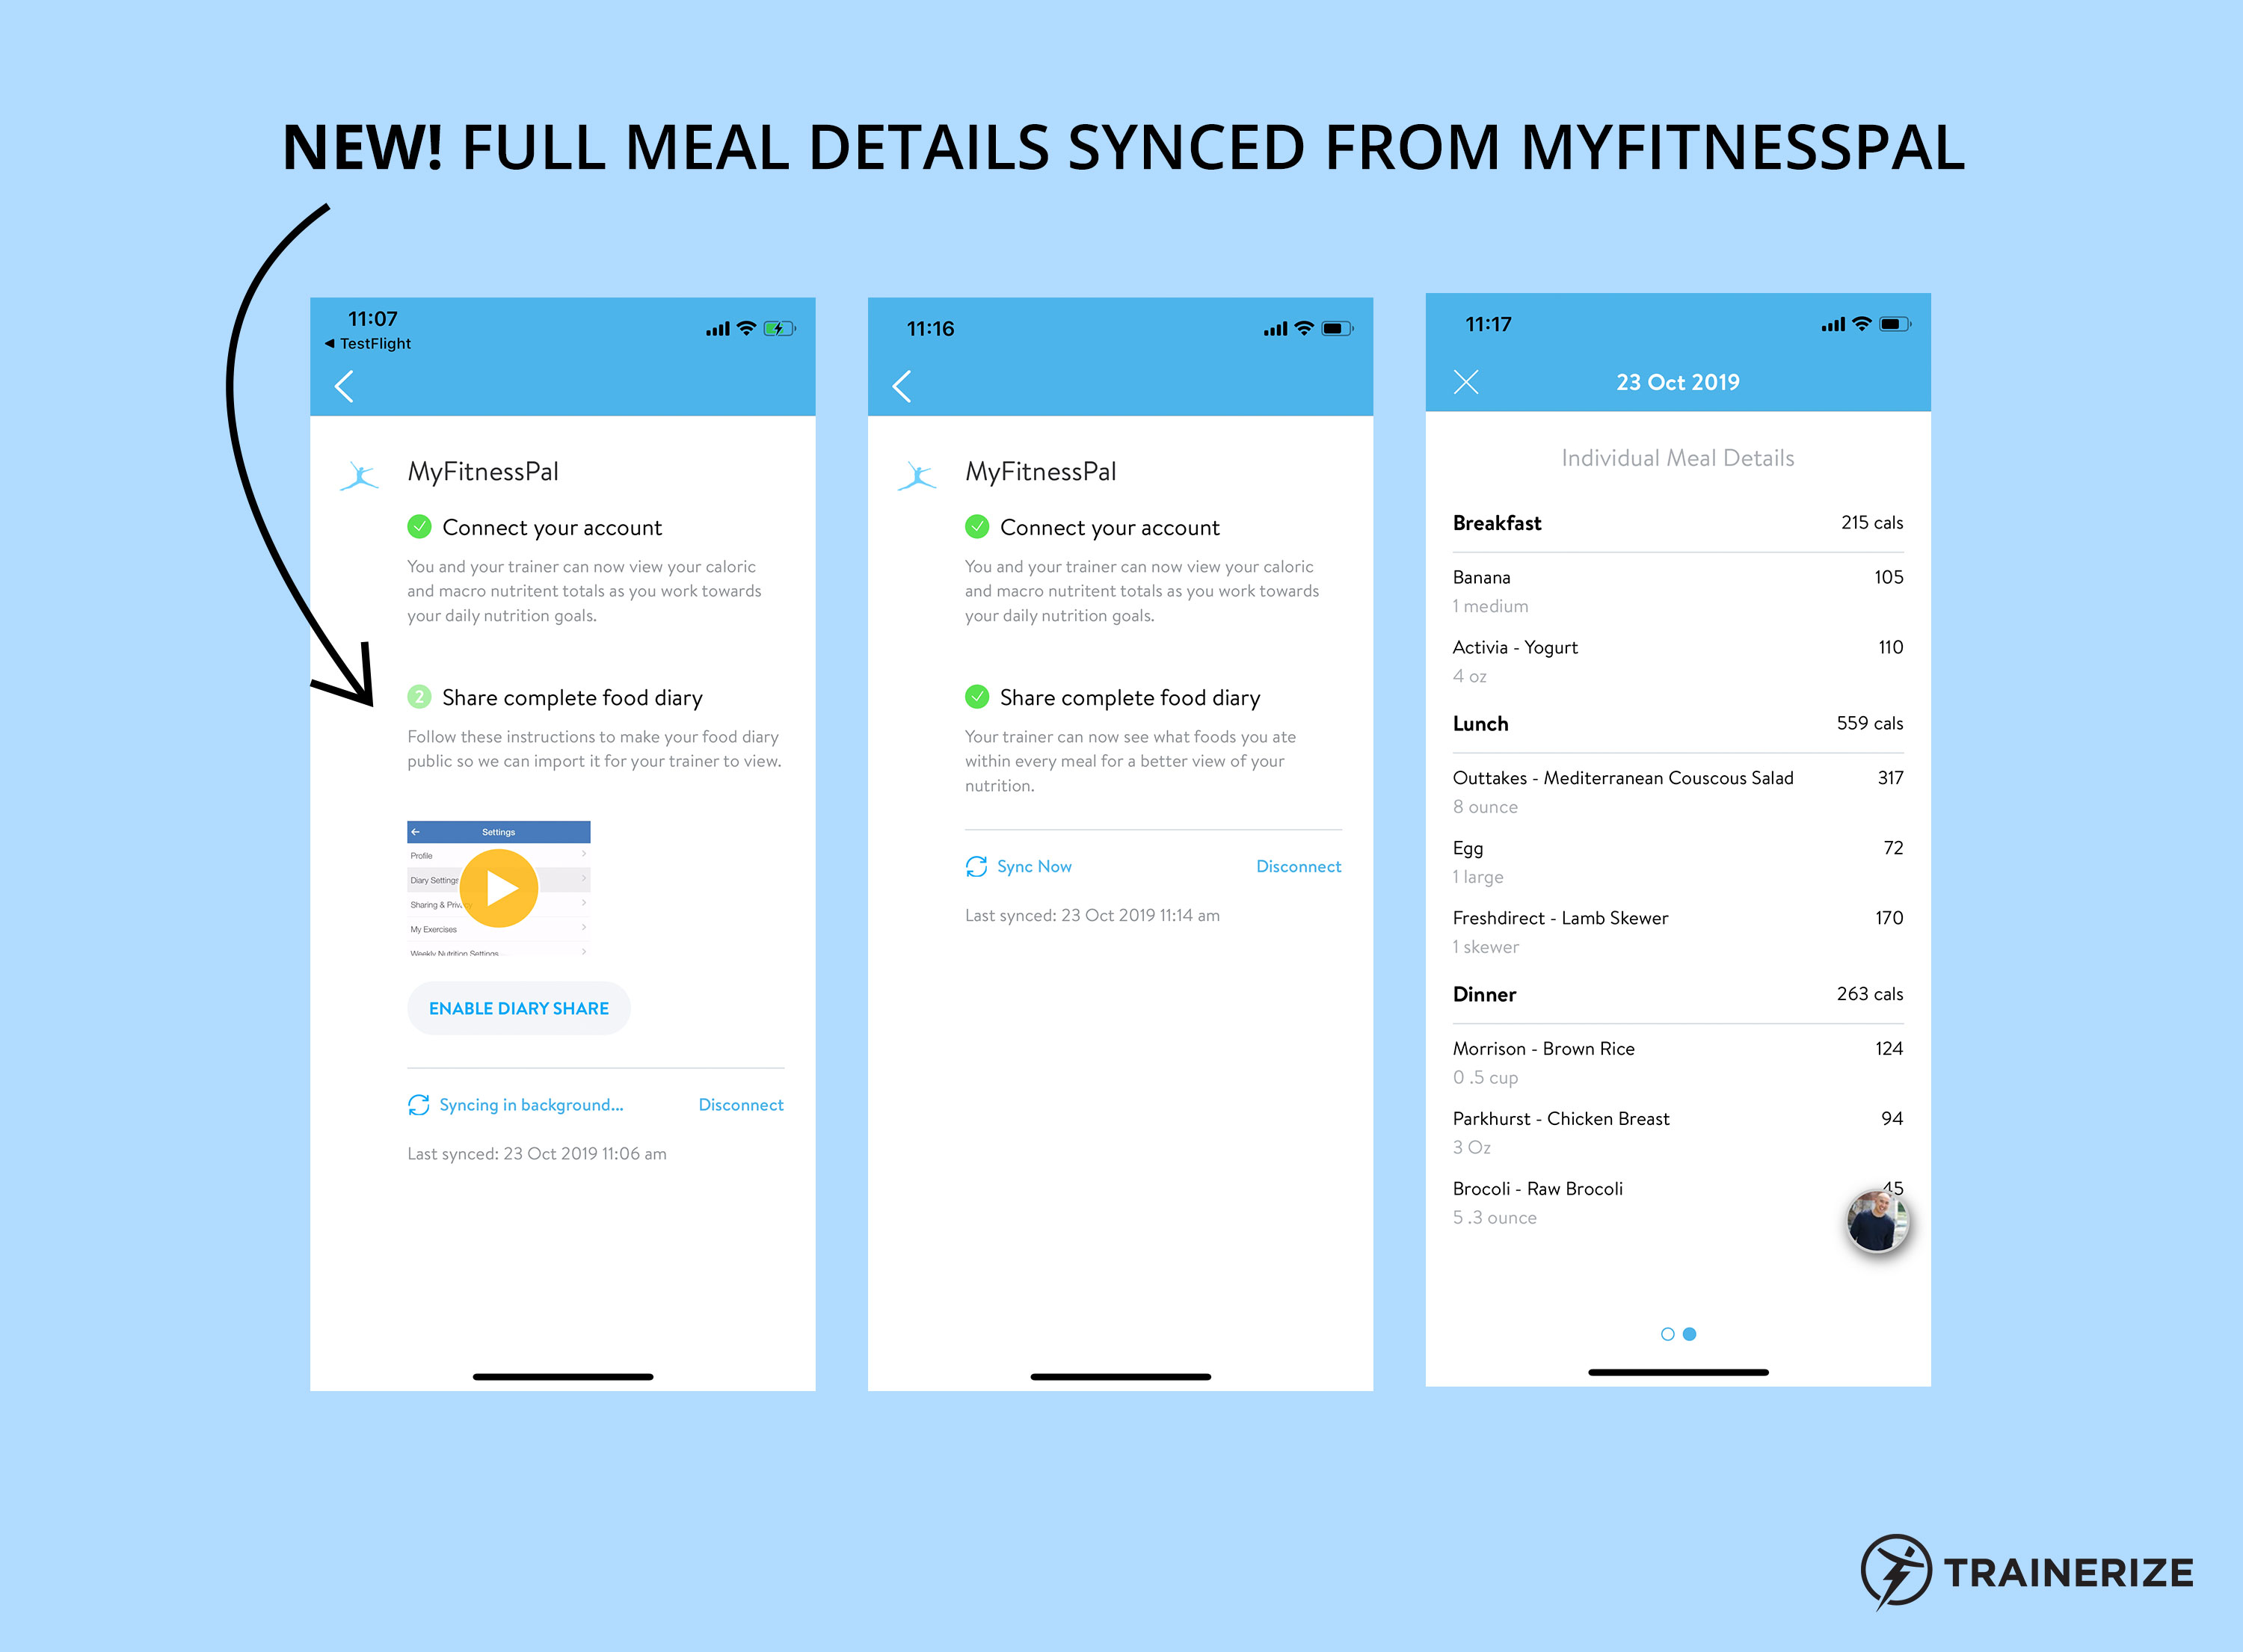 Get full meal details synced from MyFitnessPal into Trainerize